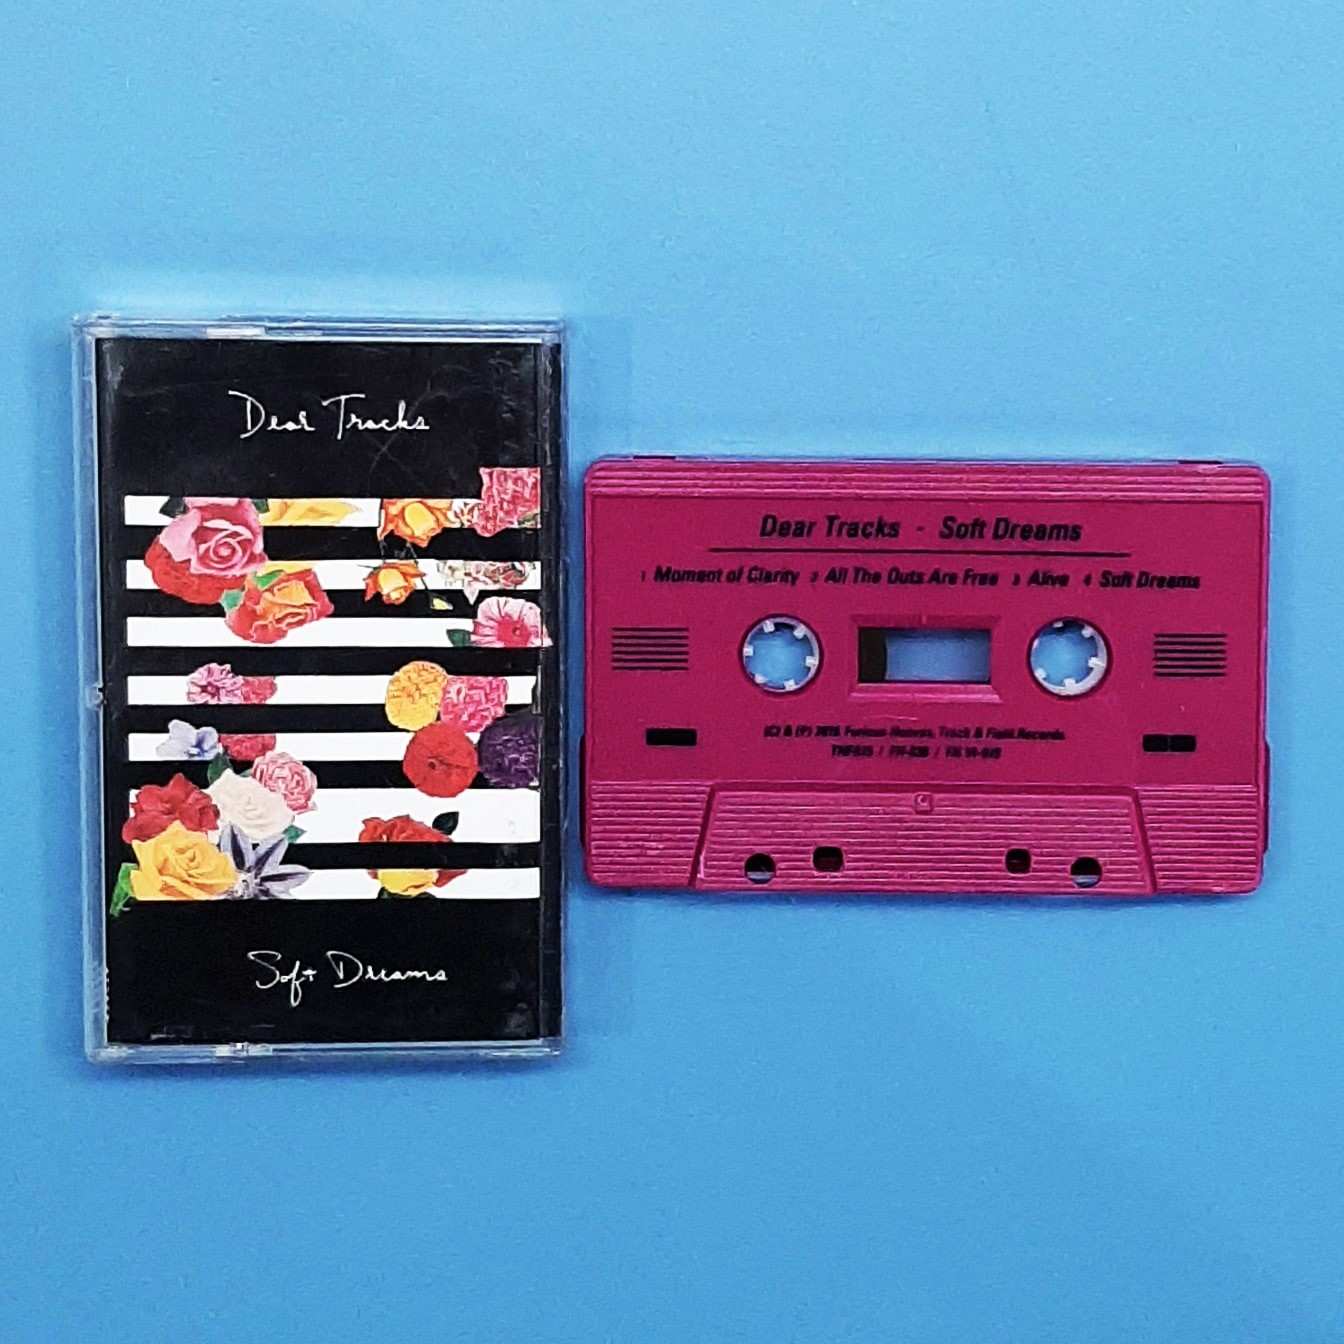 Dear Tracks - Soft Dreams (Track and Field Records / Furious Hooves)